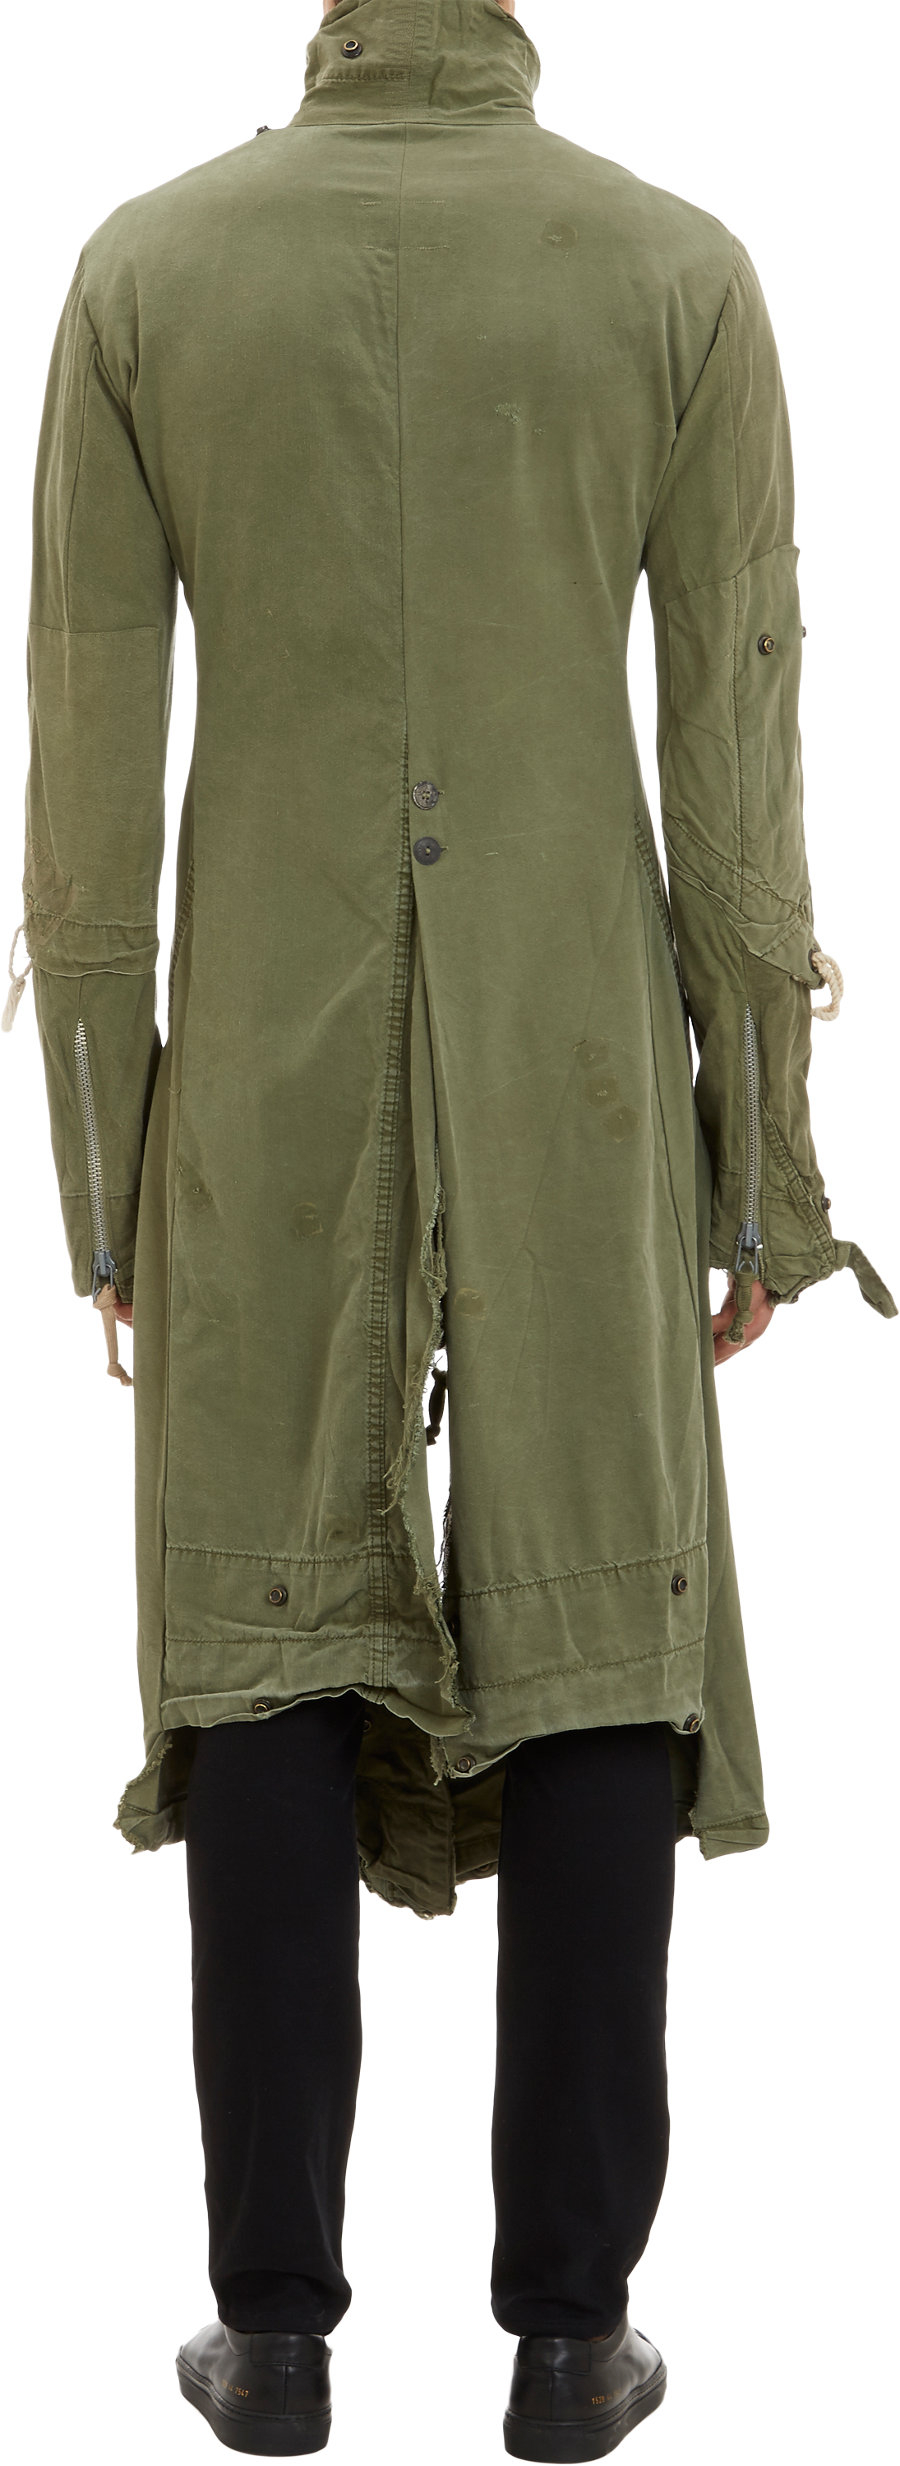 Greg Lauren Vintagetent Batman Duster Coat In Green For